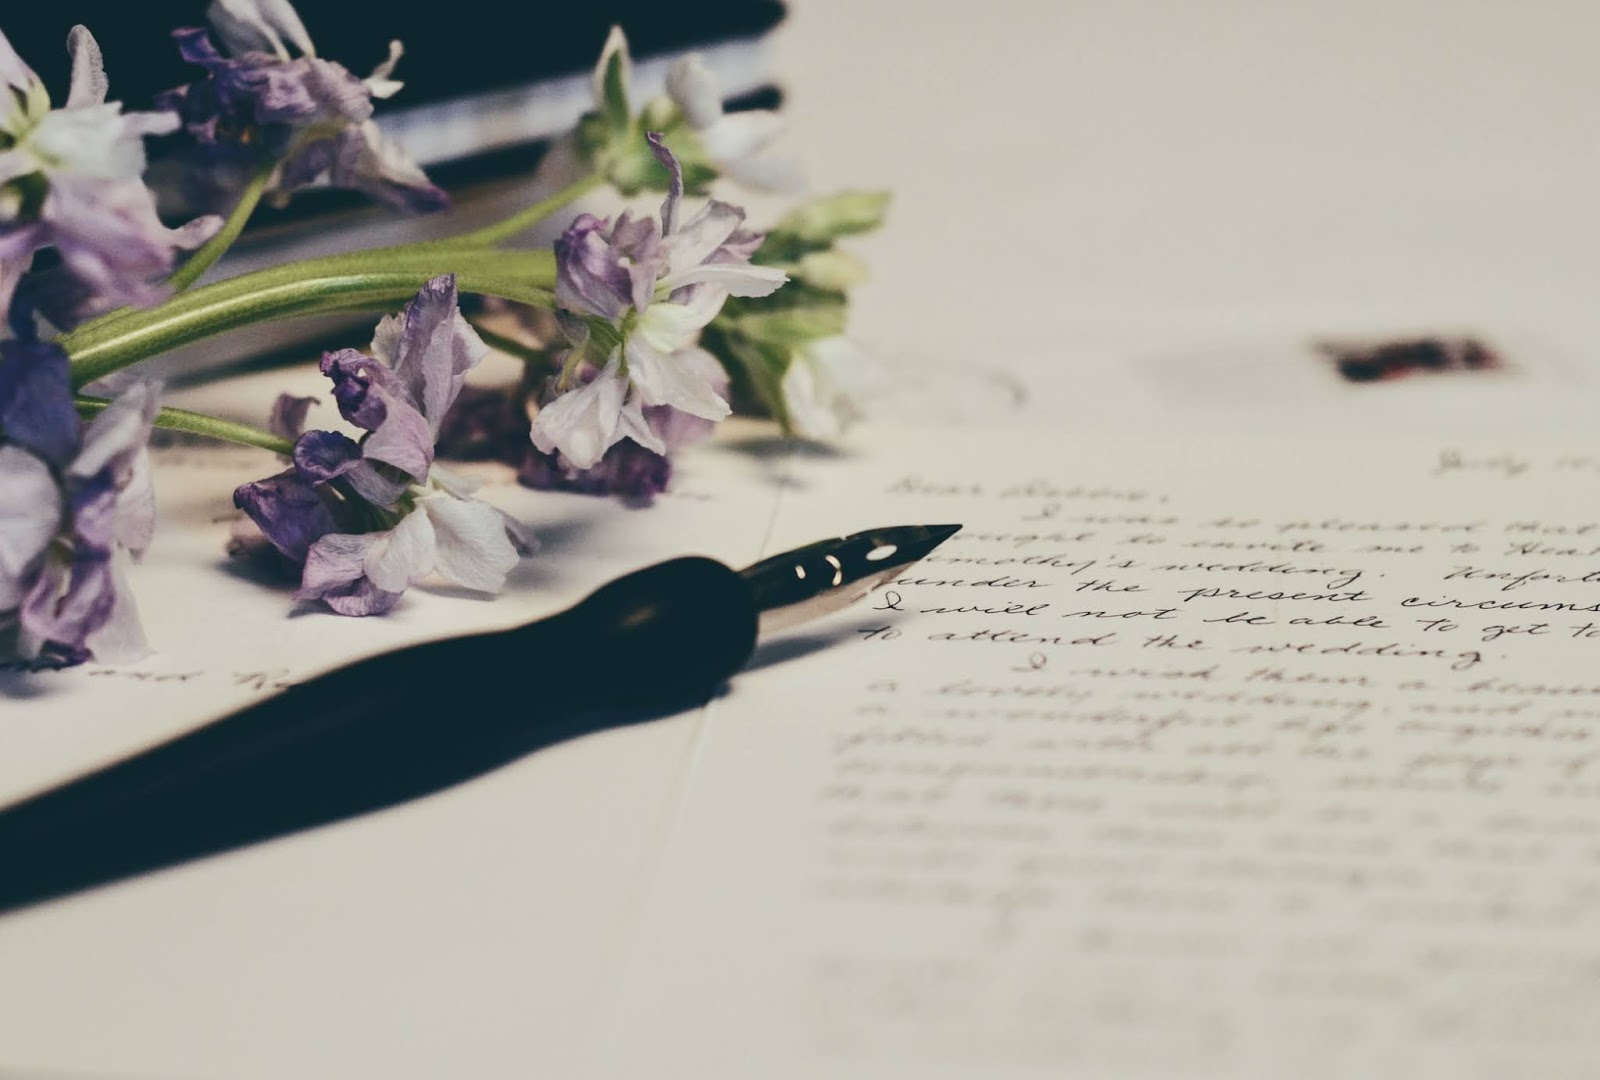 close up photo of a letter and purple flowers